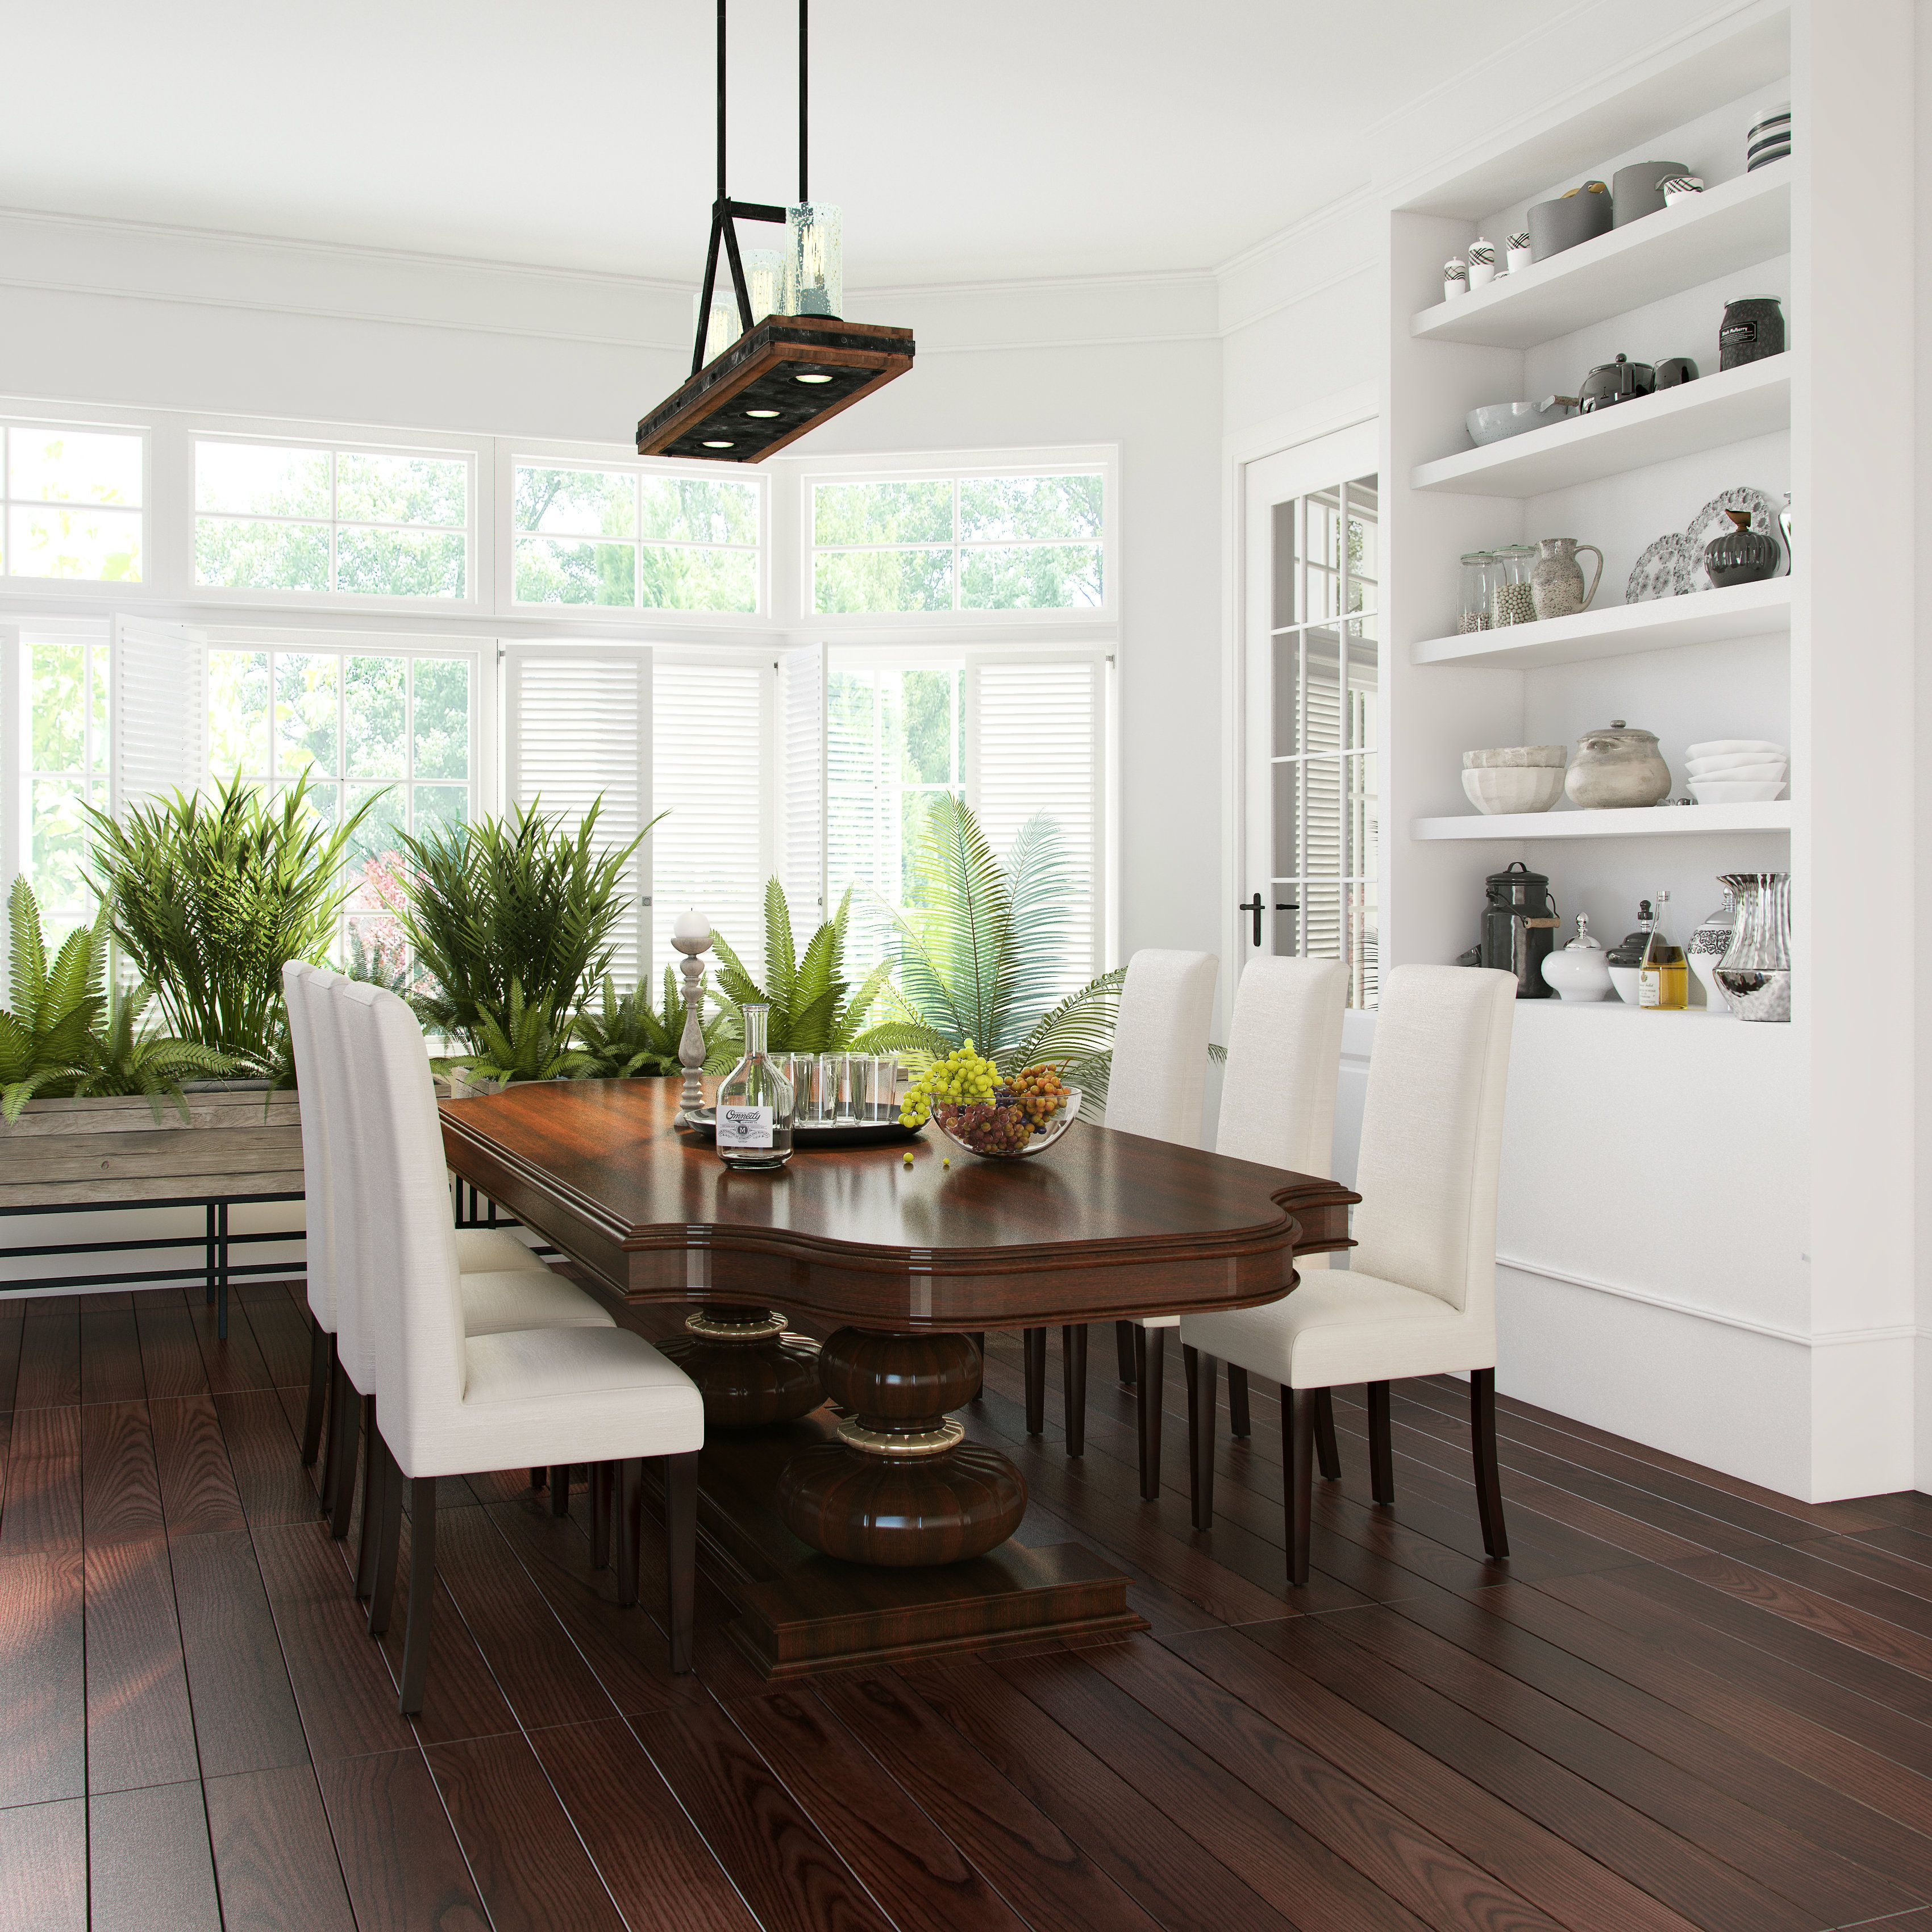 Captivating greens dining room images best inspiration home design plenty of greens and white define this refreshing dining room dzzzfo